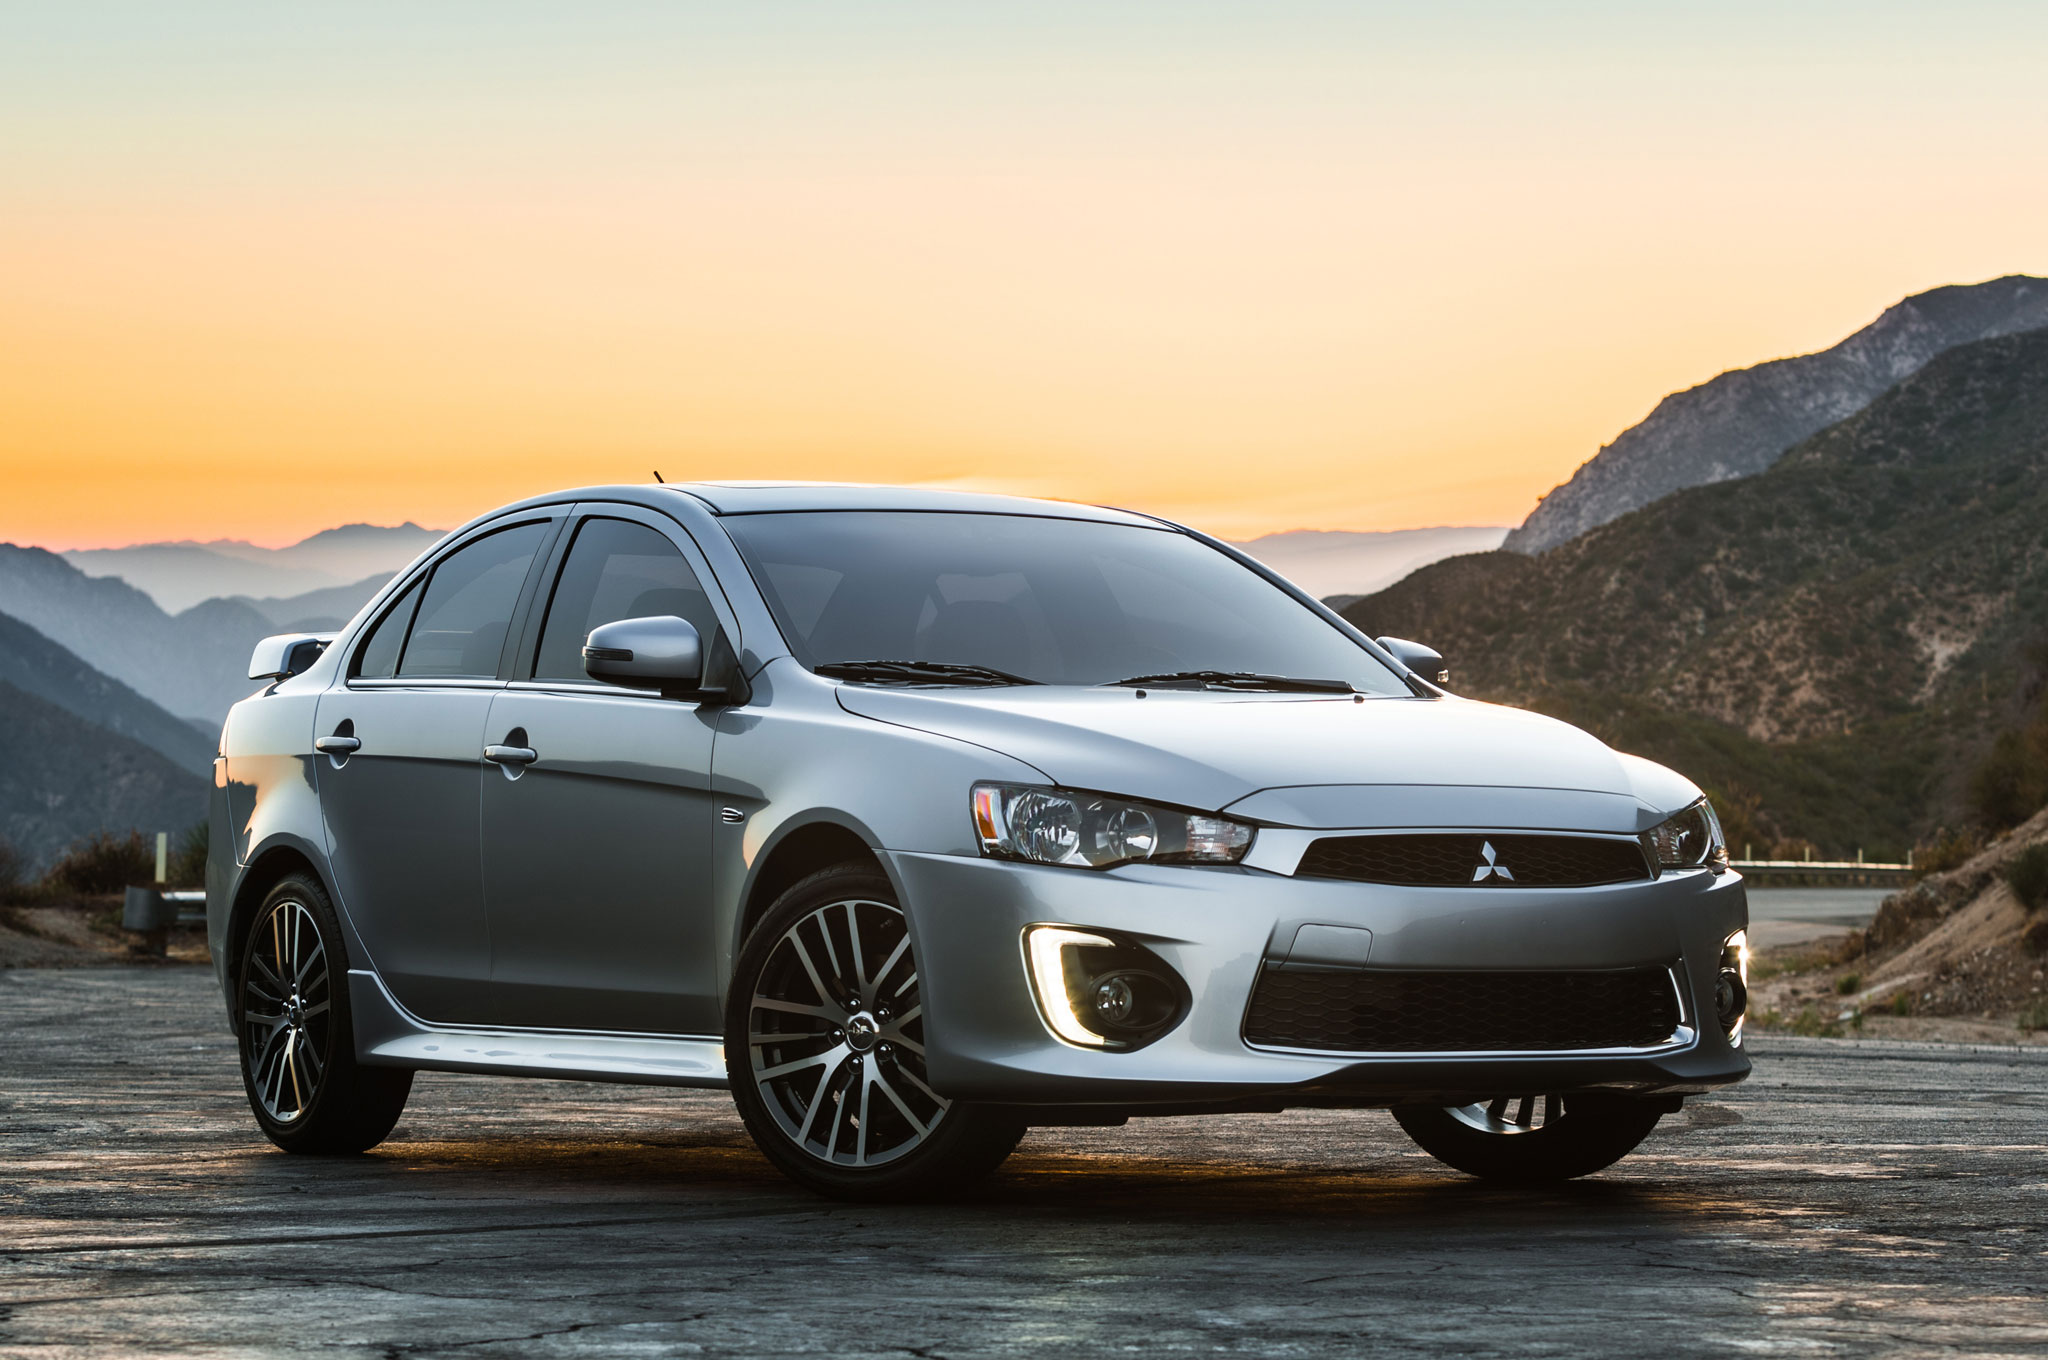 2016-Mitsubishi-Lancer-GT-front-three-quarter-04